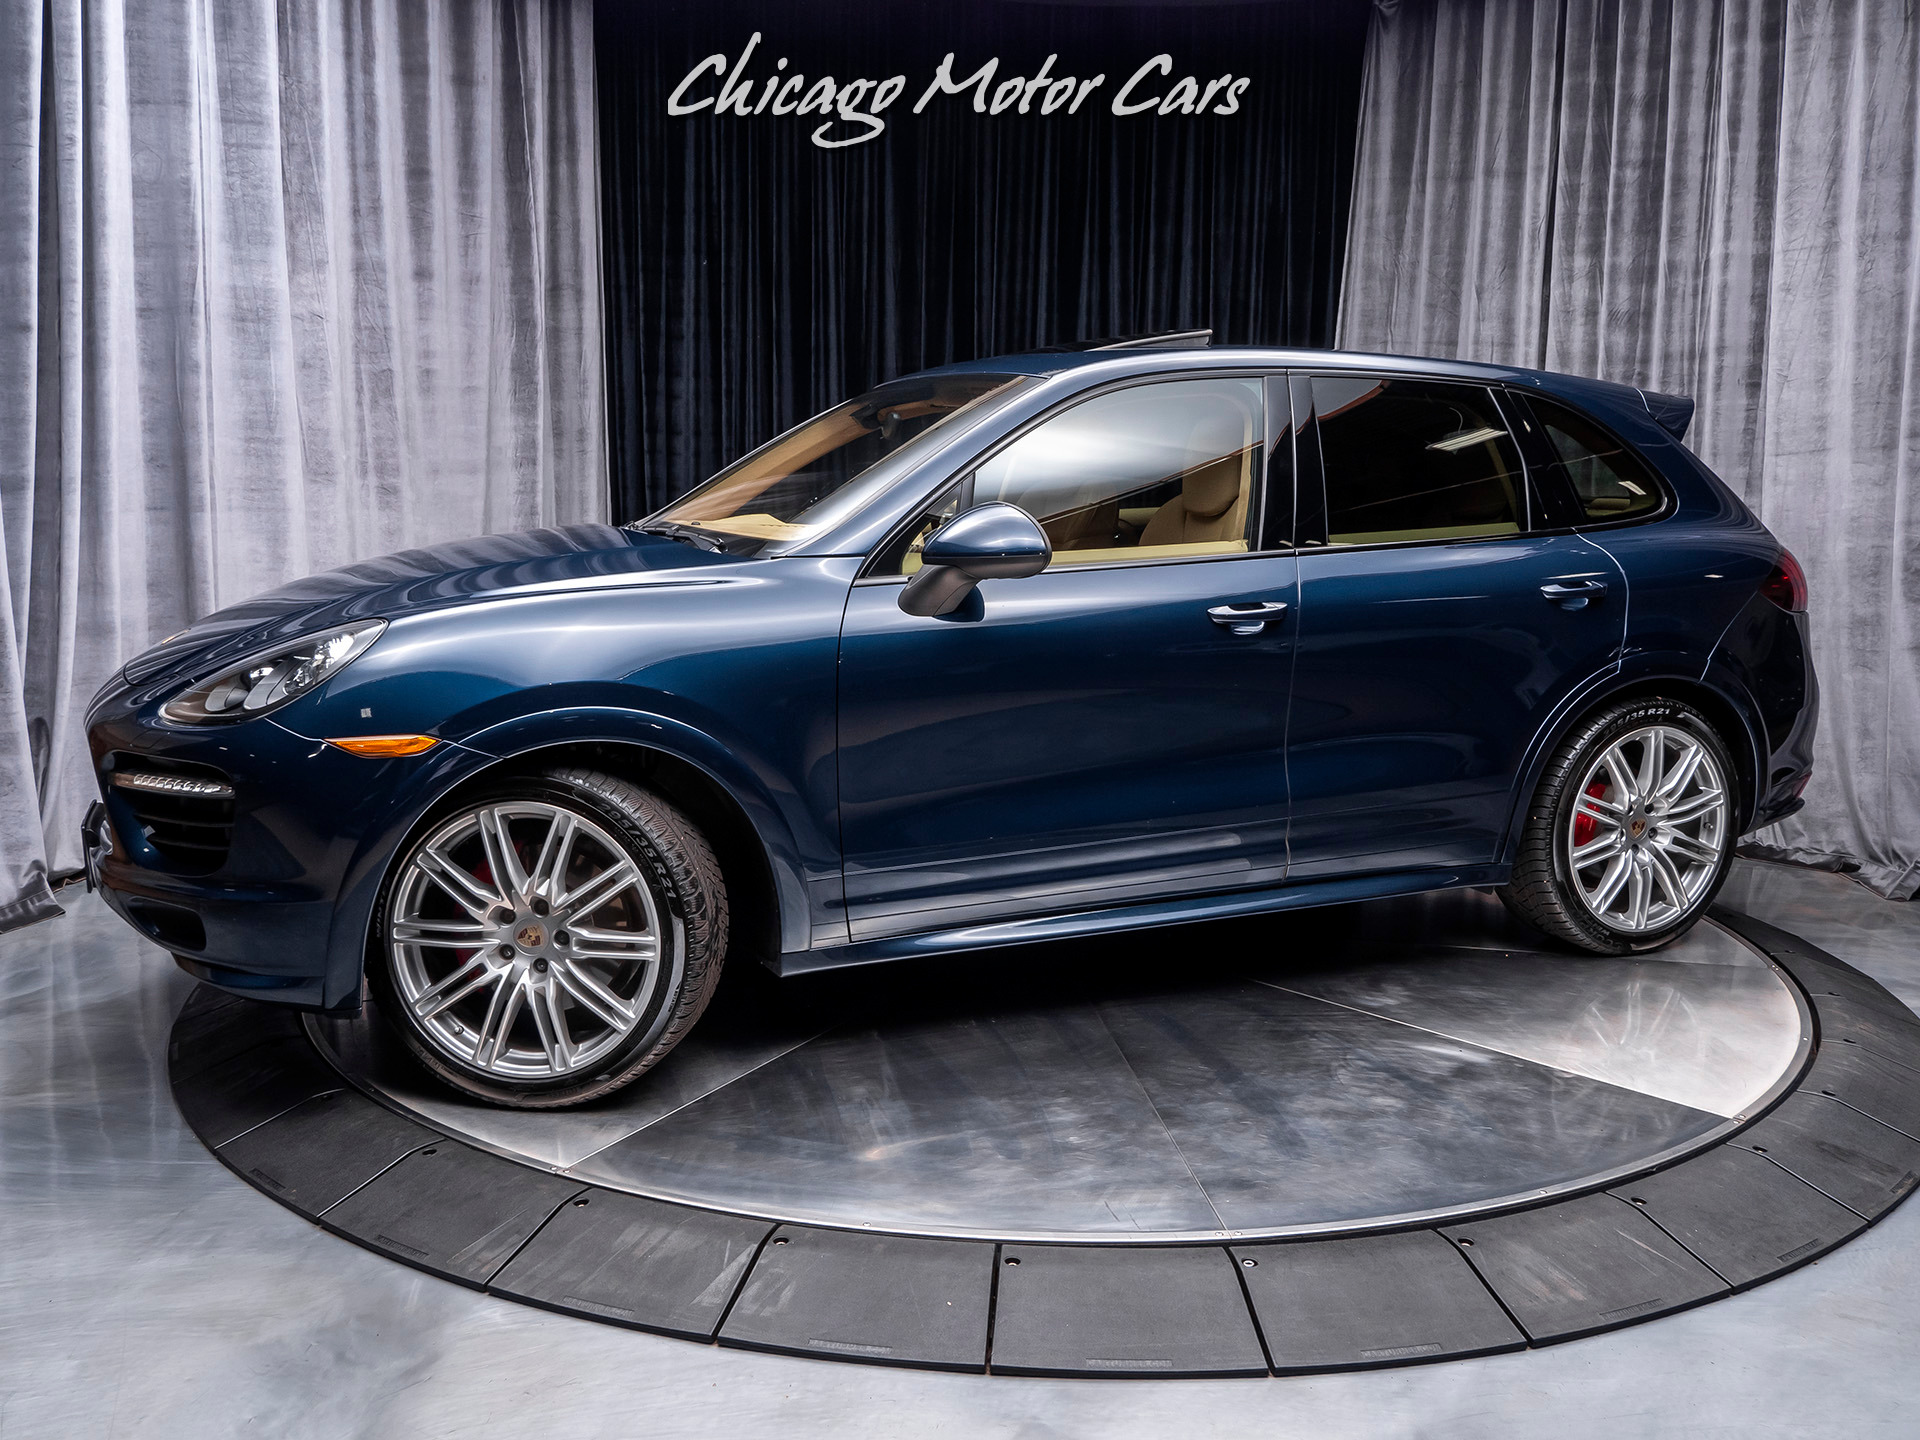 2013 Porsche Cayenne Gts Suv Awd Msrp 99k Chicago Motor Cars Inc Official Corporate Website For Chicago Motor Cars